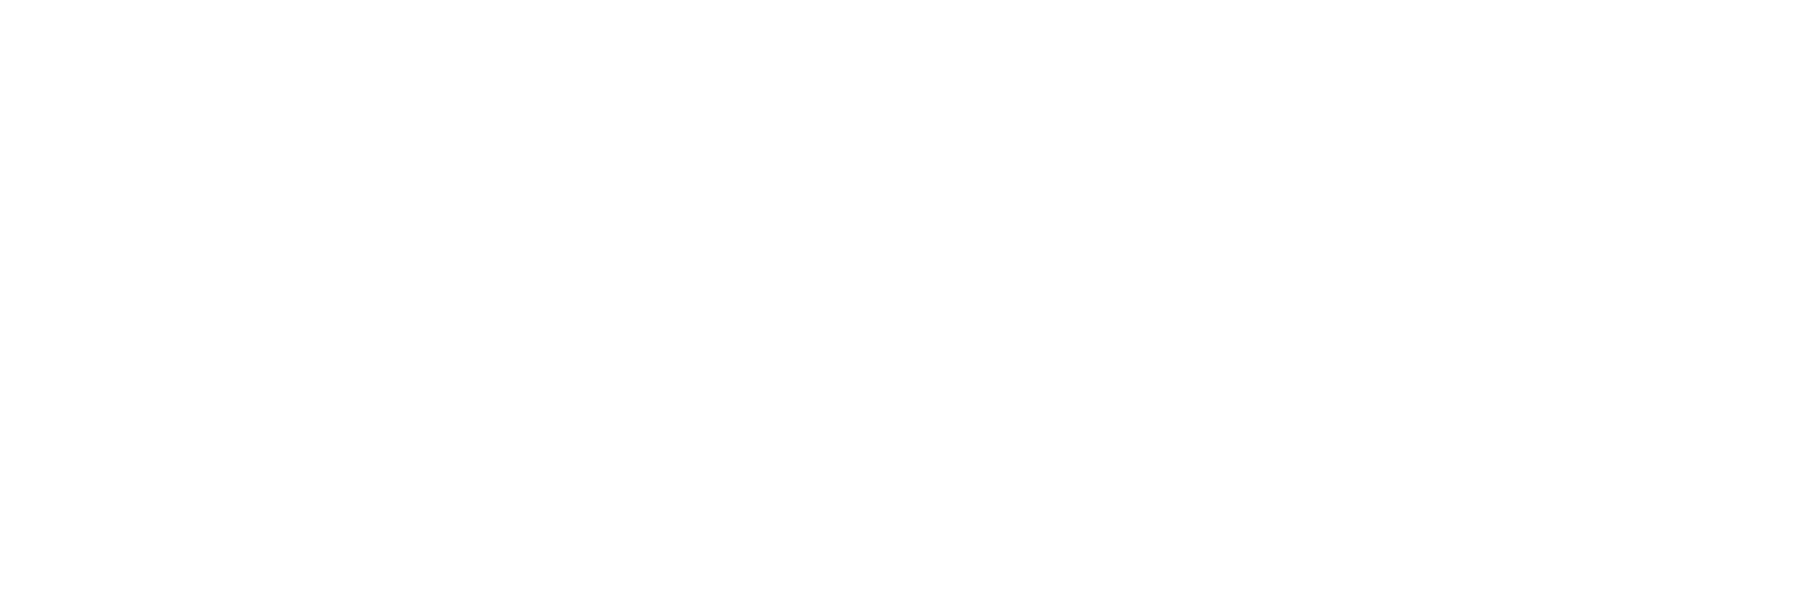 The Consummate Flutist